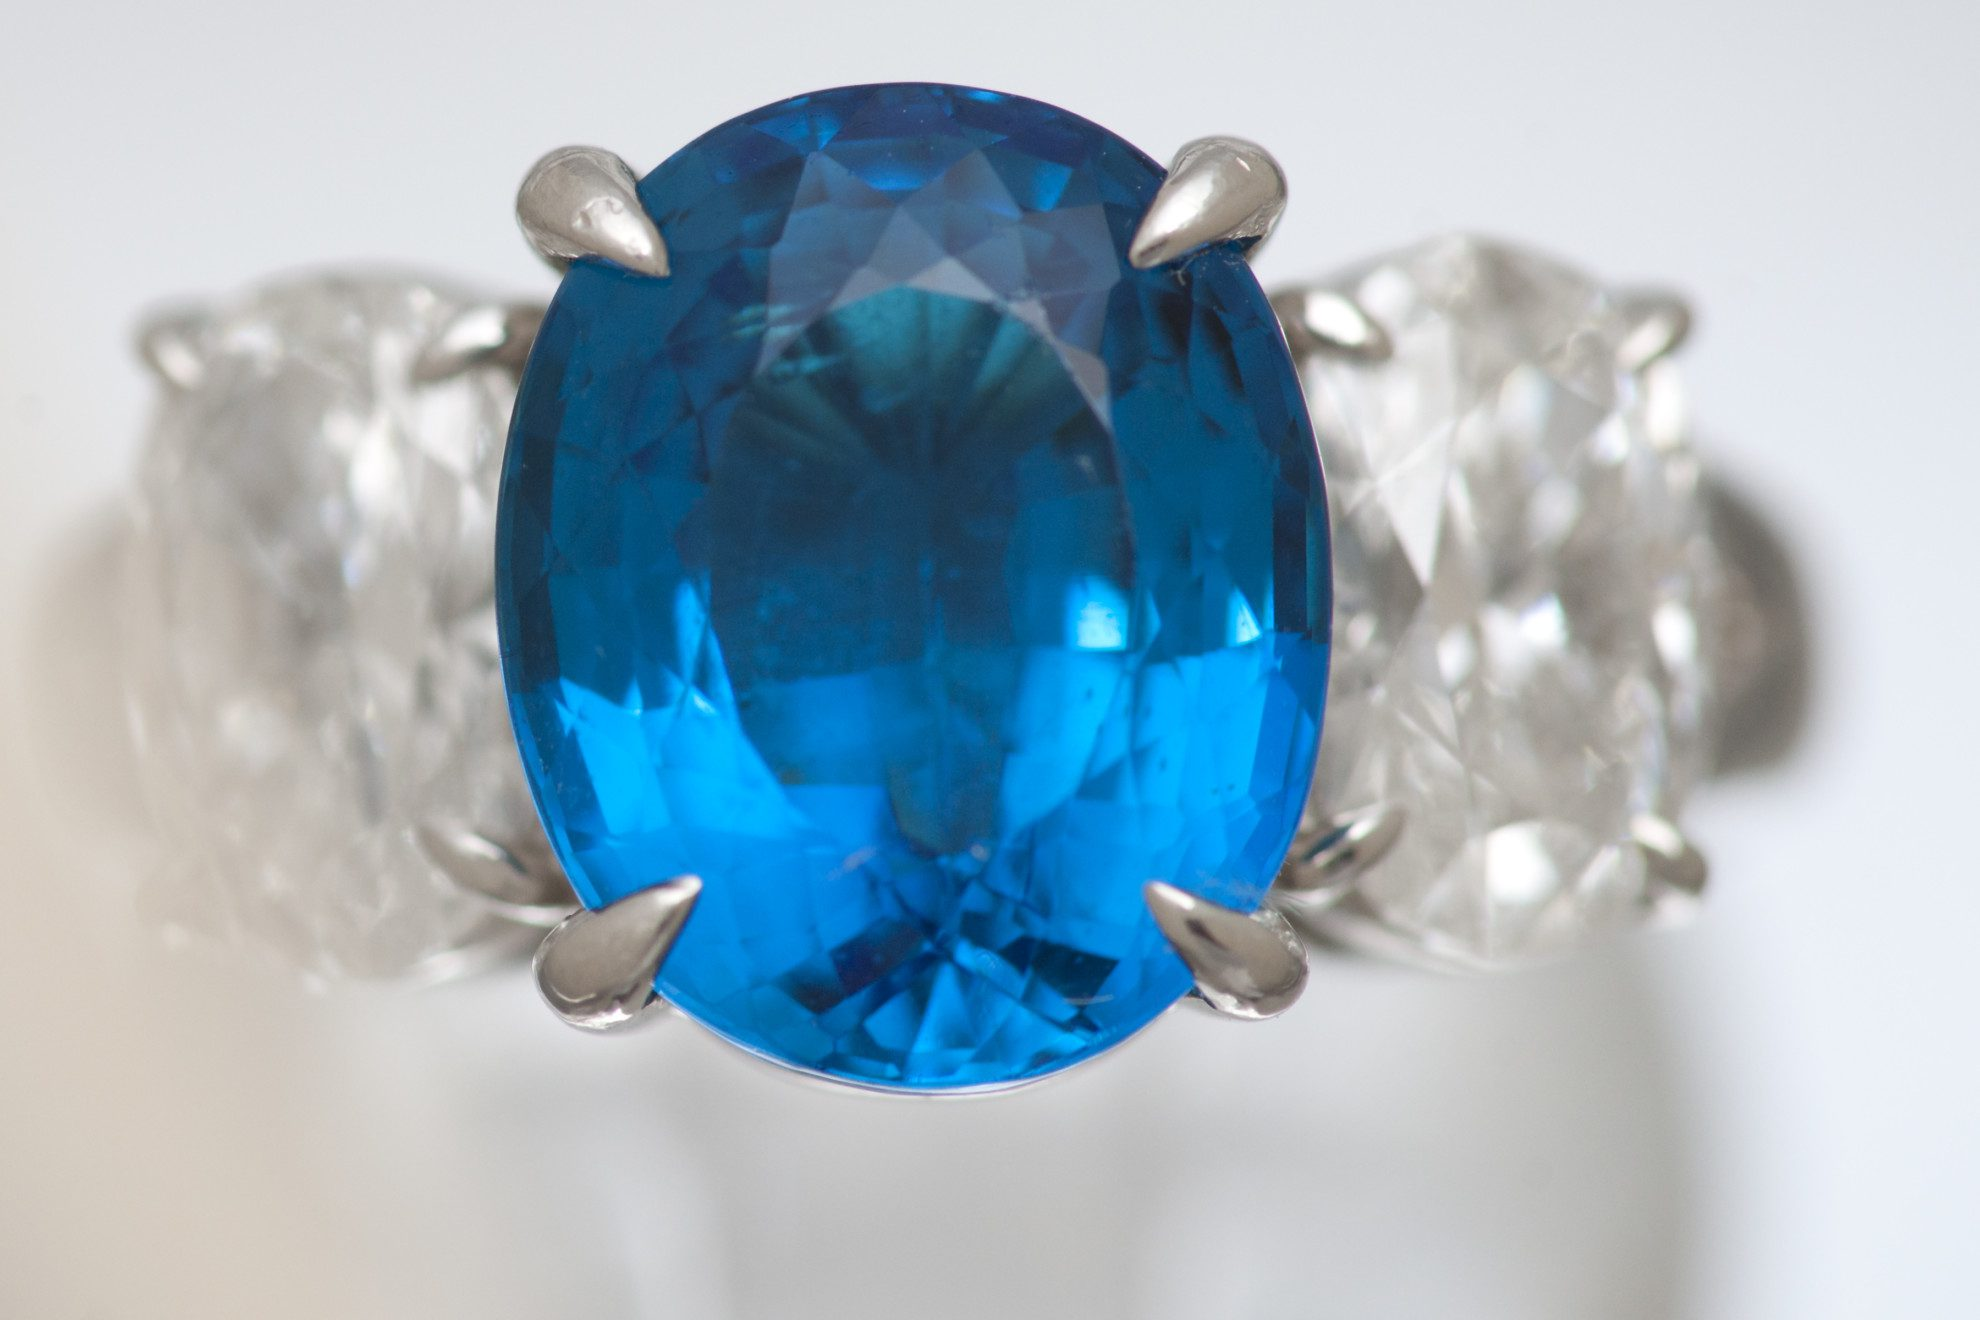 pin price blue info and ring com request diamond carrerasjewelers aquamarine on sapphire